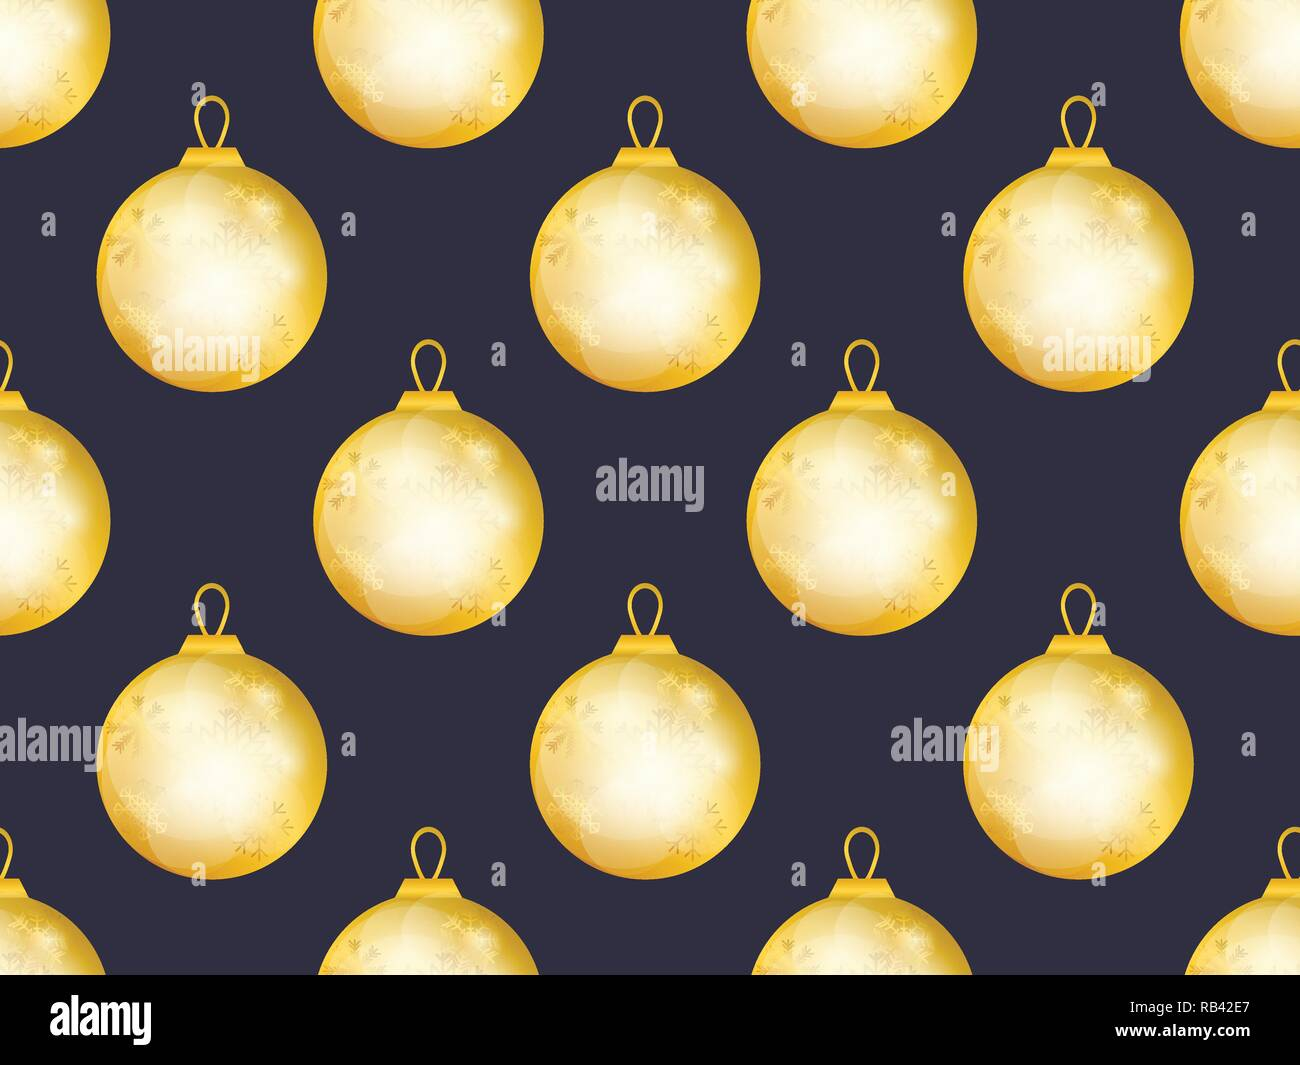 Gold christmas balls seamless pattern  Bokeh effect  Greeting card